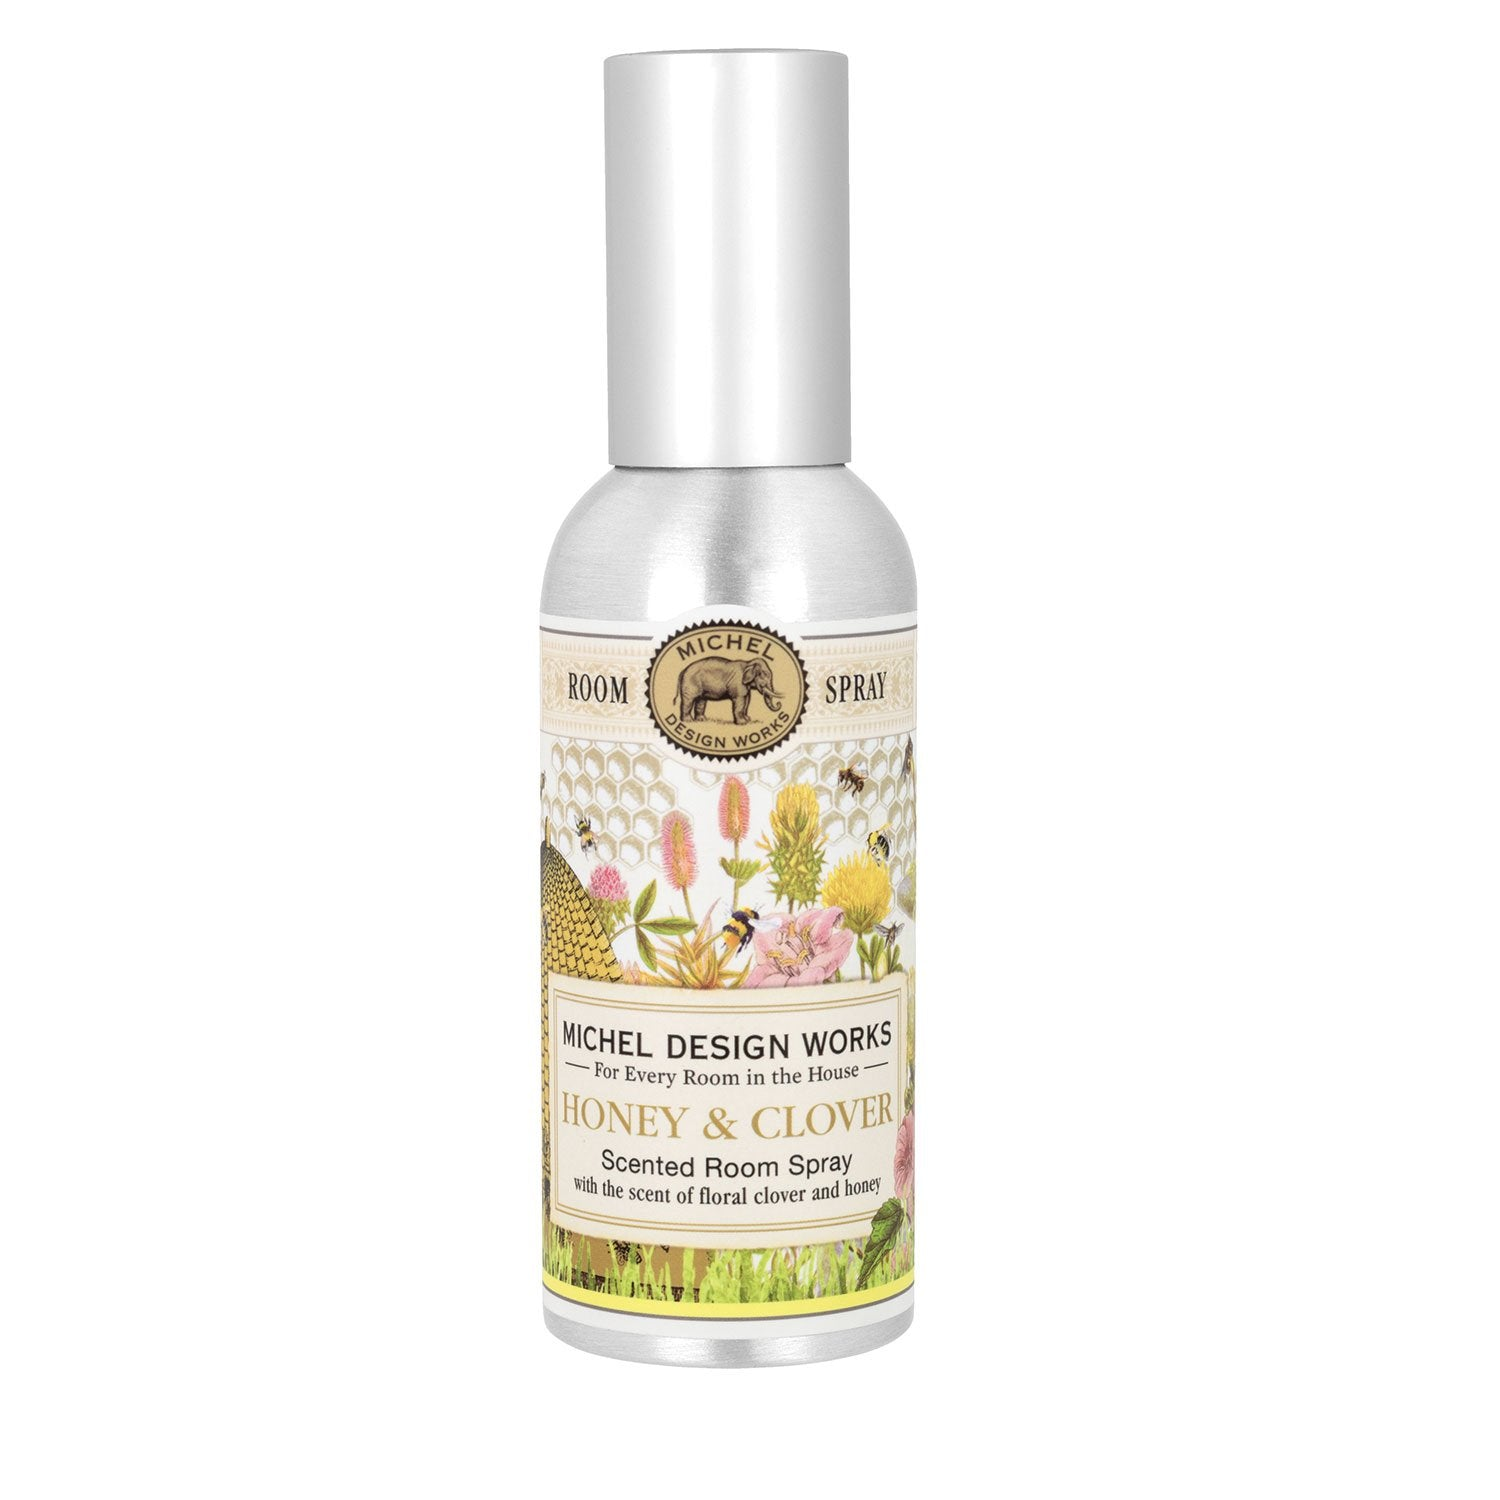 Honey & Clover Room Spray